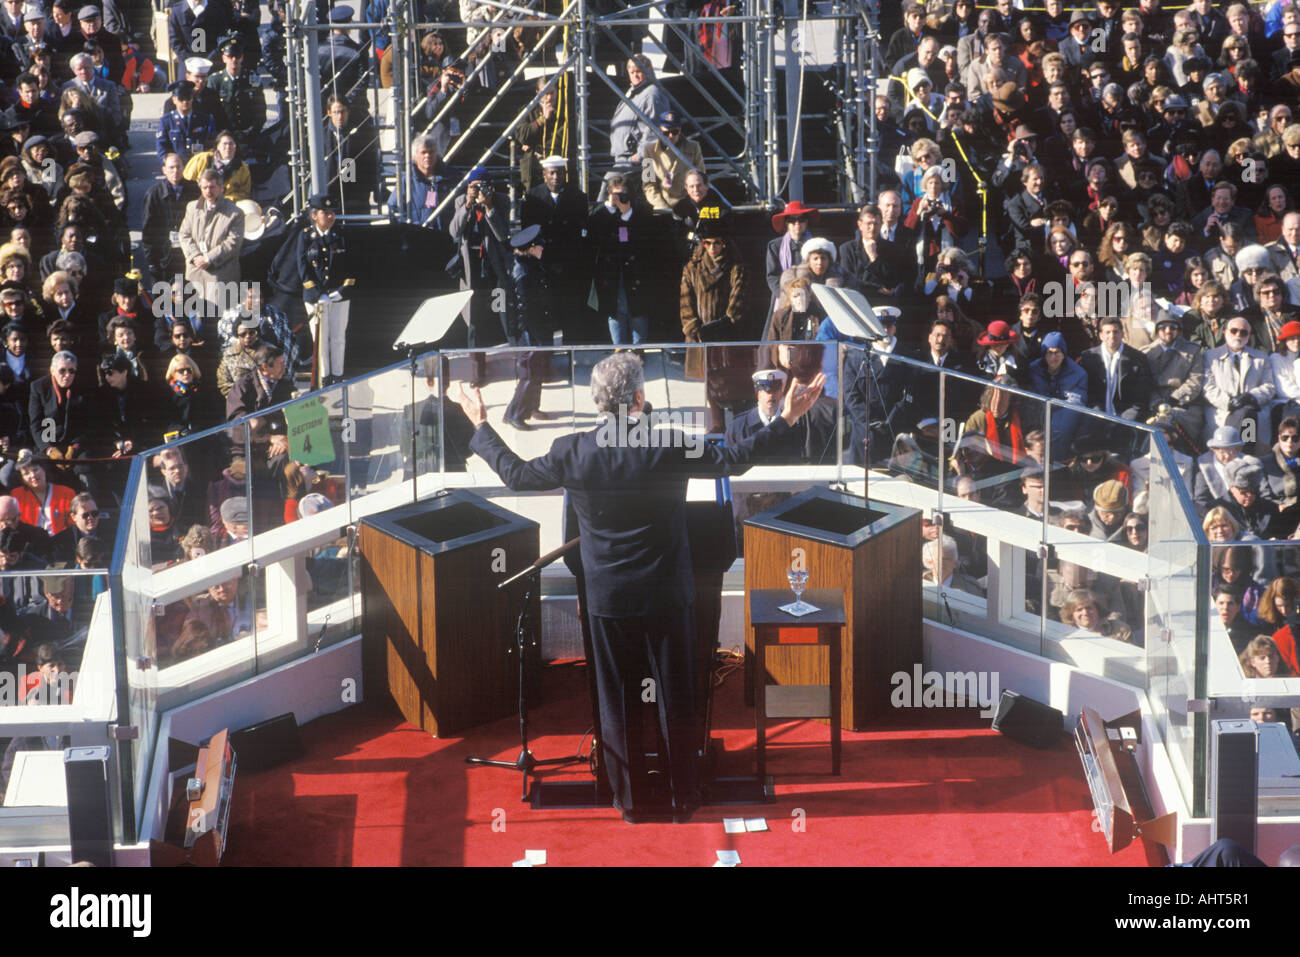 Bill Clinton 42nd President gives Inaugural Address on Inauguration Day 1993 Washington DC - Stock Image